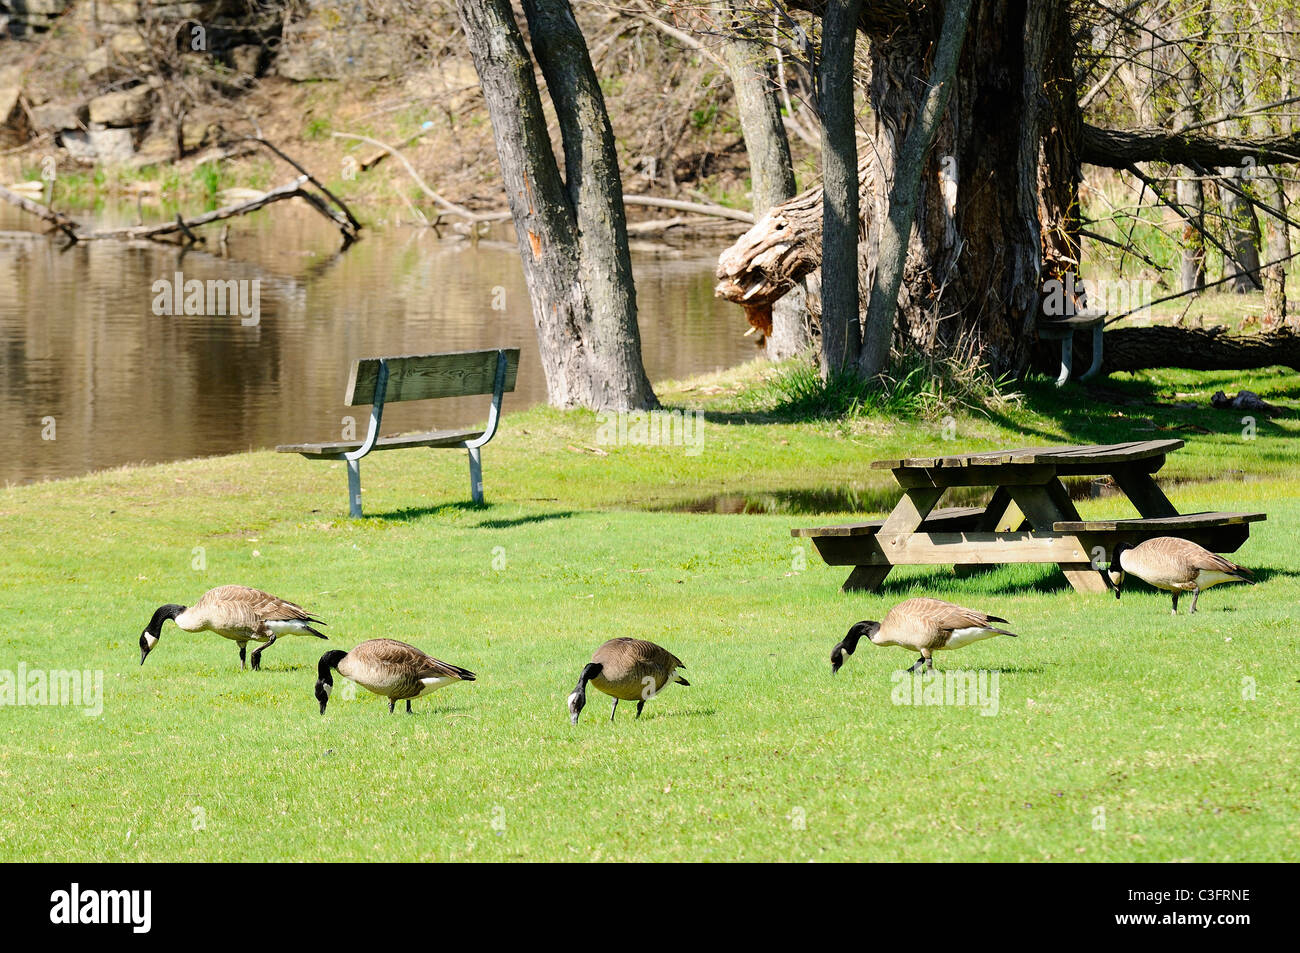 Nuisance Geese congregating in city park near river banks. Stock Photo